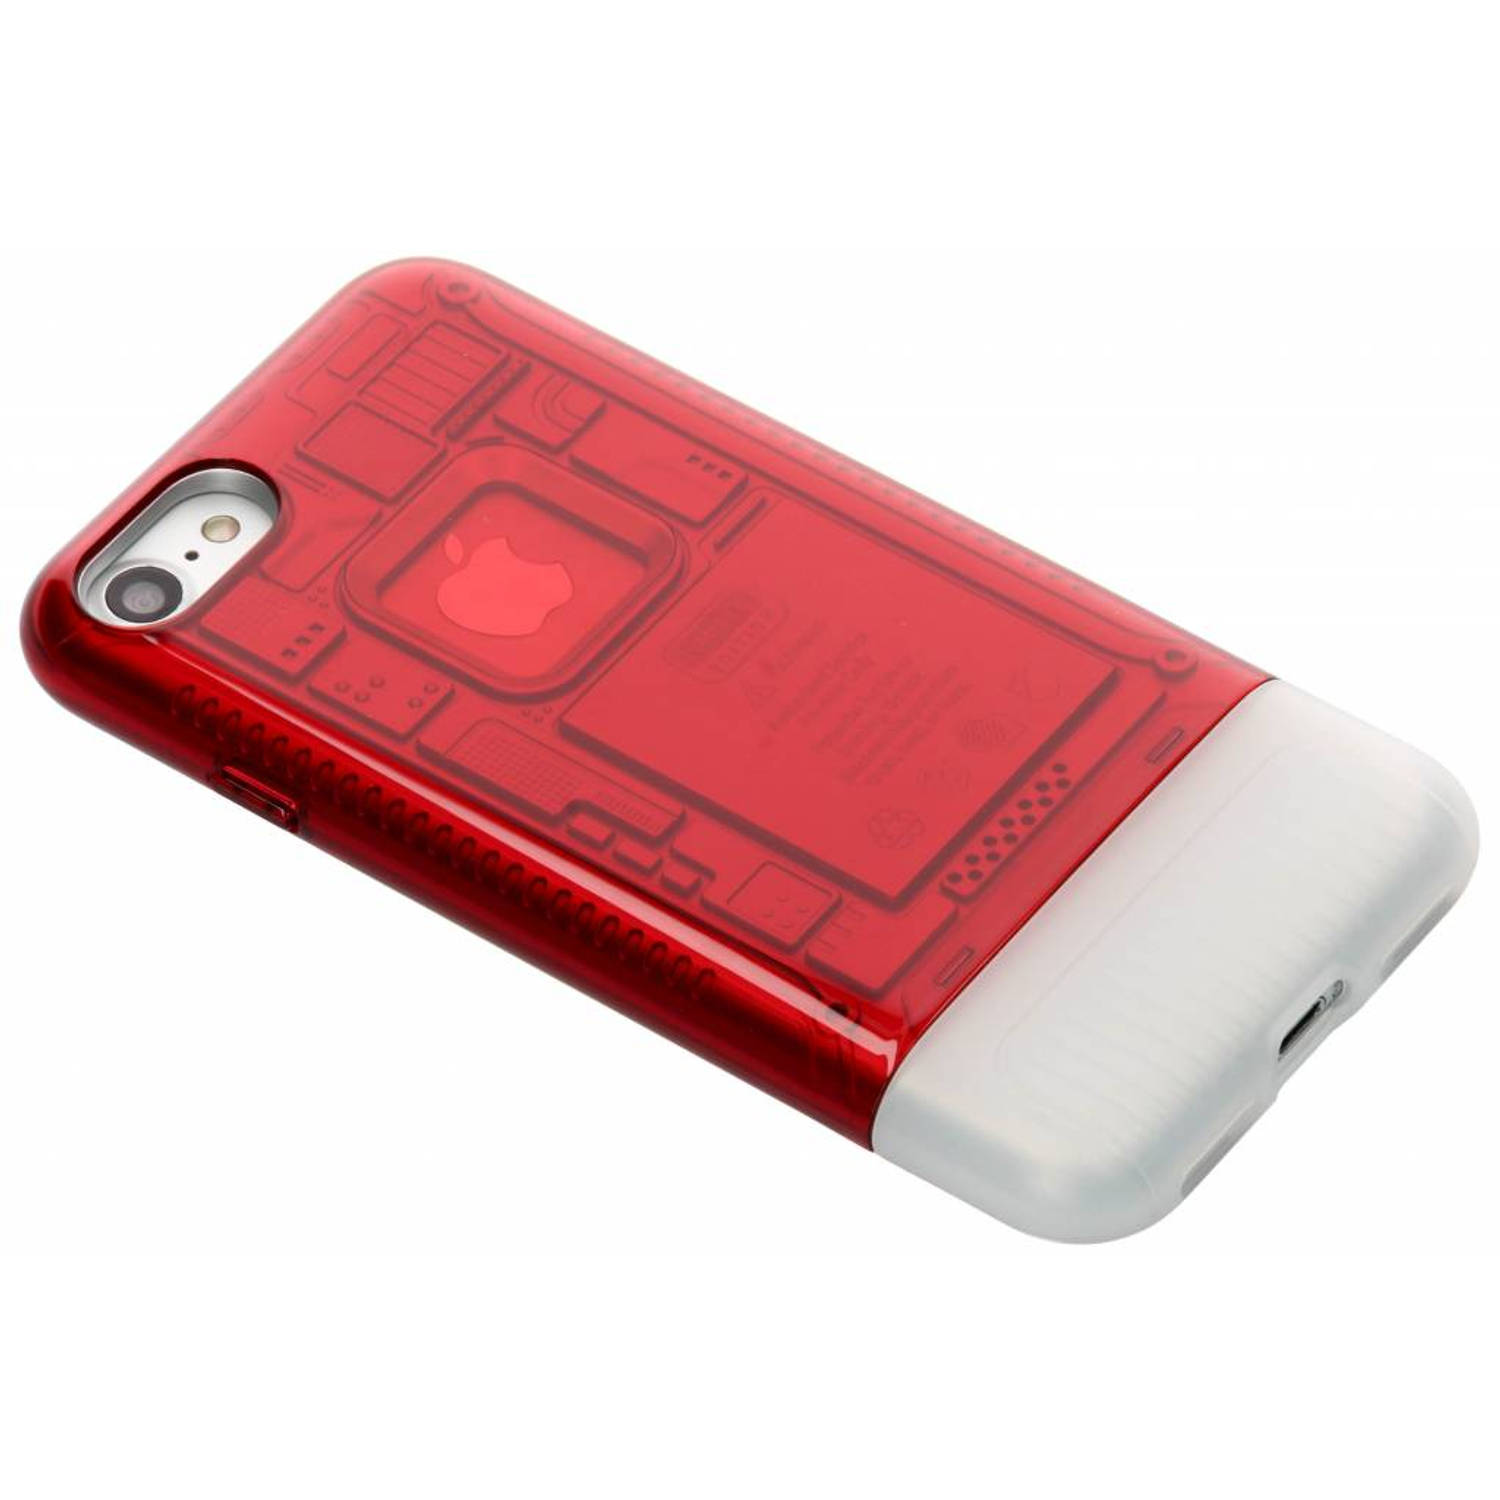 Rode Classic C1™ Case voor de iPhone 8 / 7